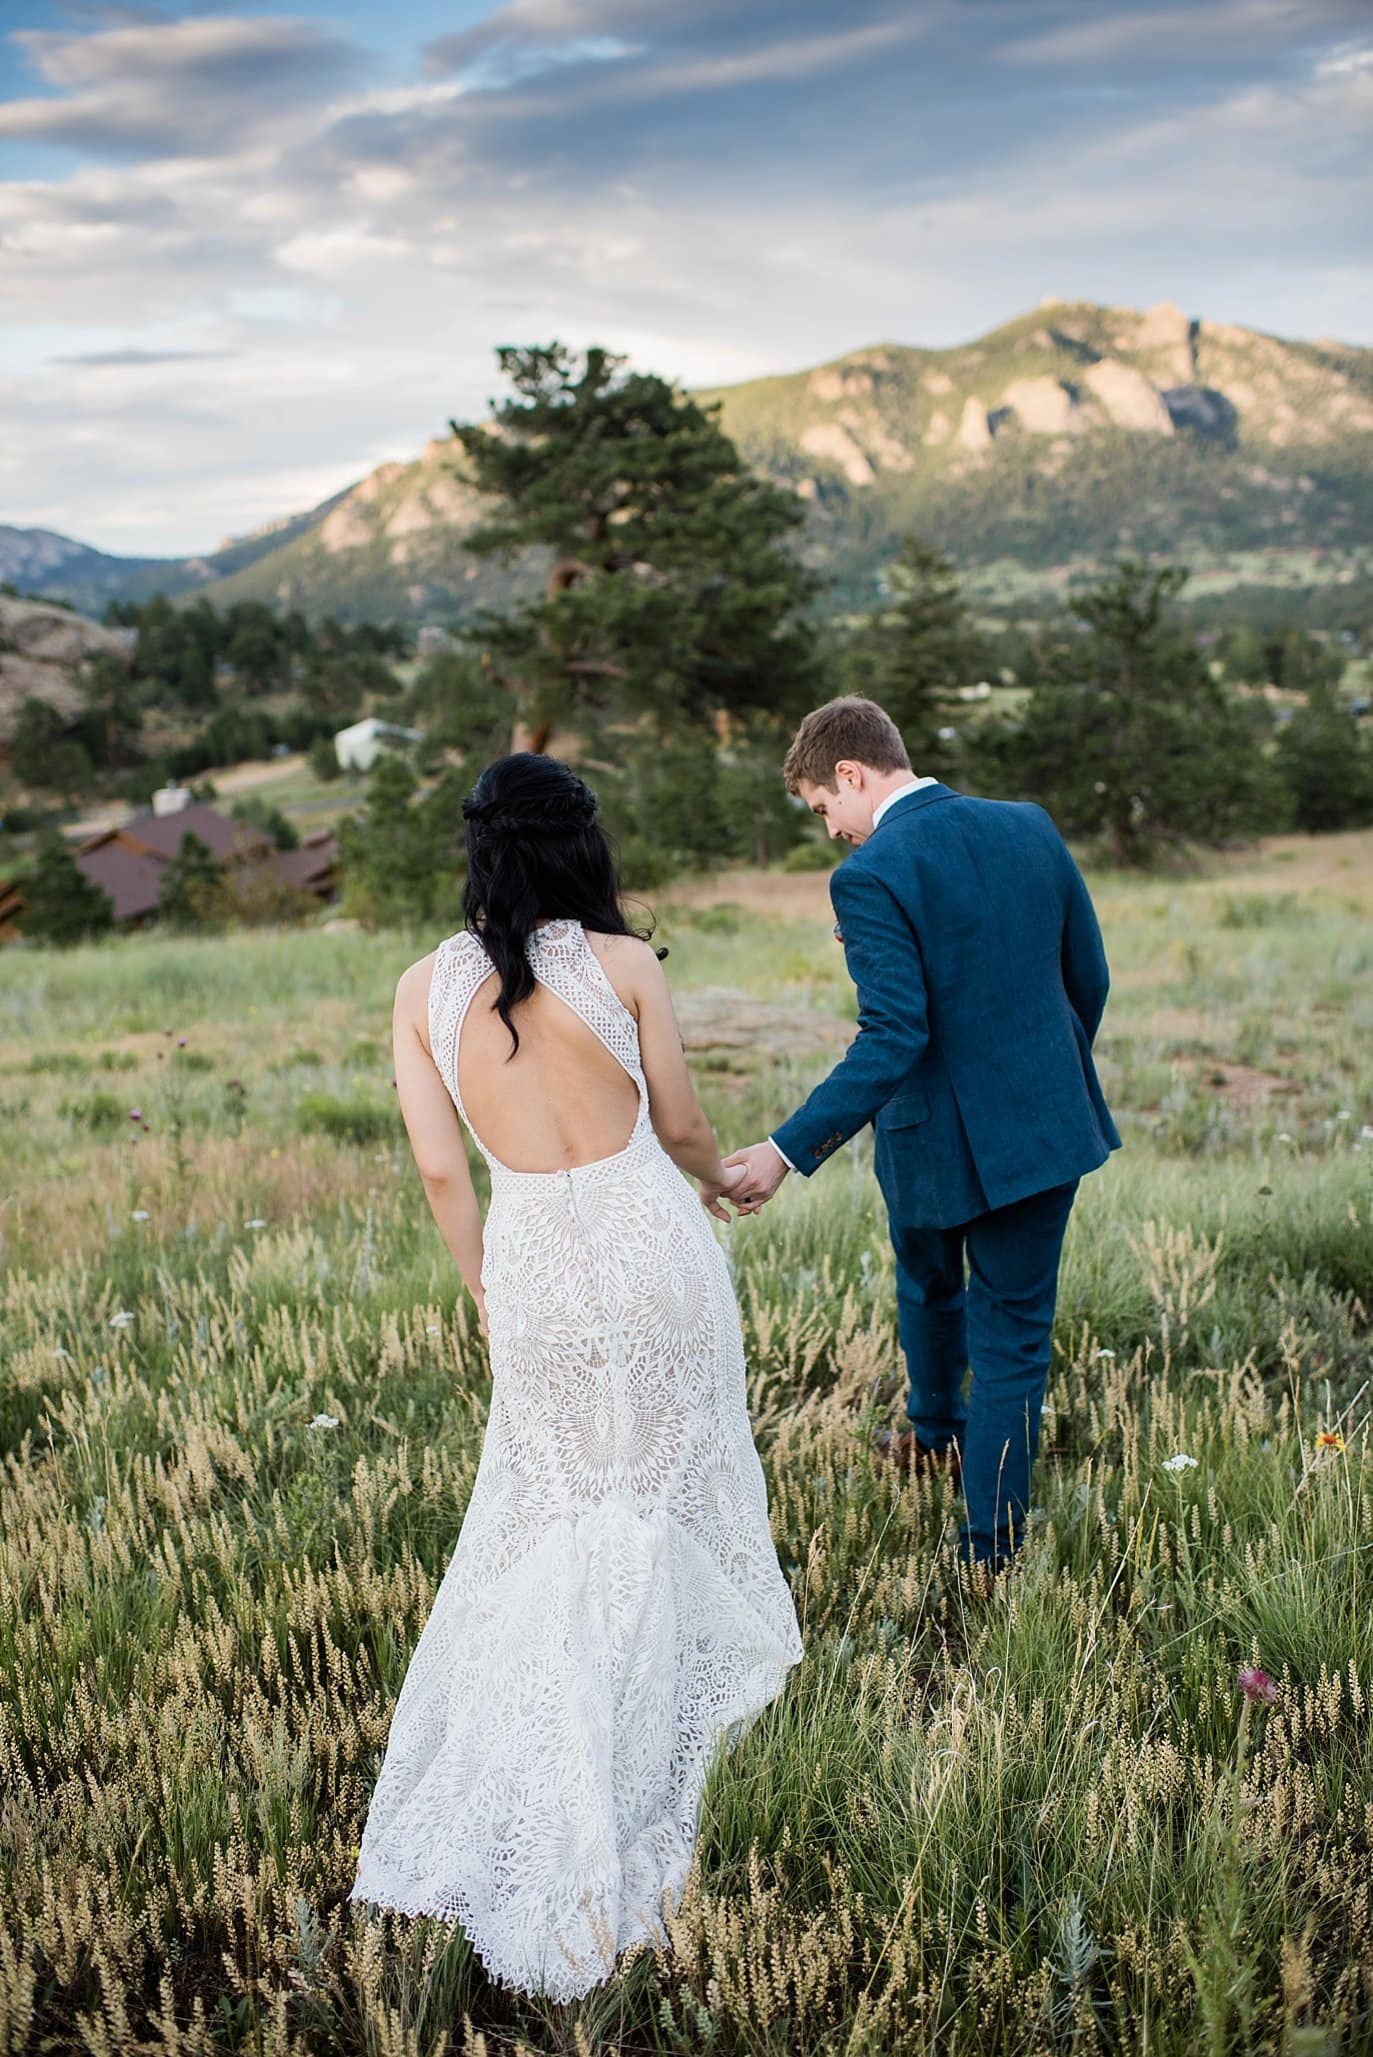 sunset photo at Taharaa Mountain Lodge Rocky Mountain National Park 3M Curve wedding by RMNP Wedding Photography Jennie Crate